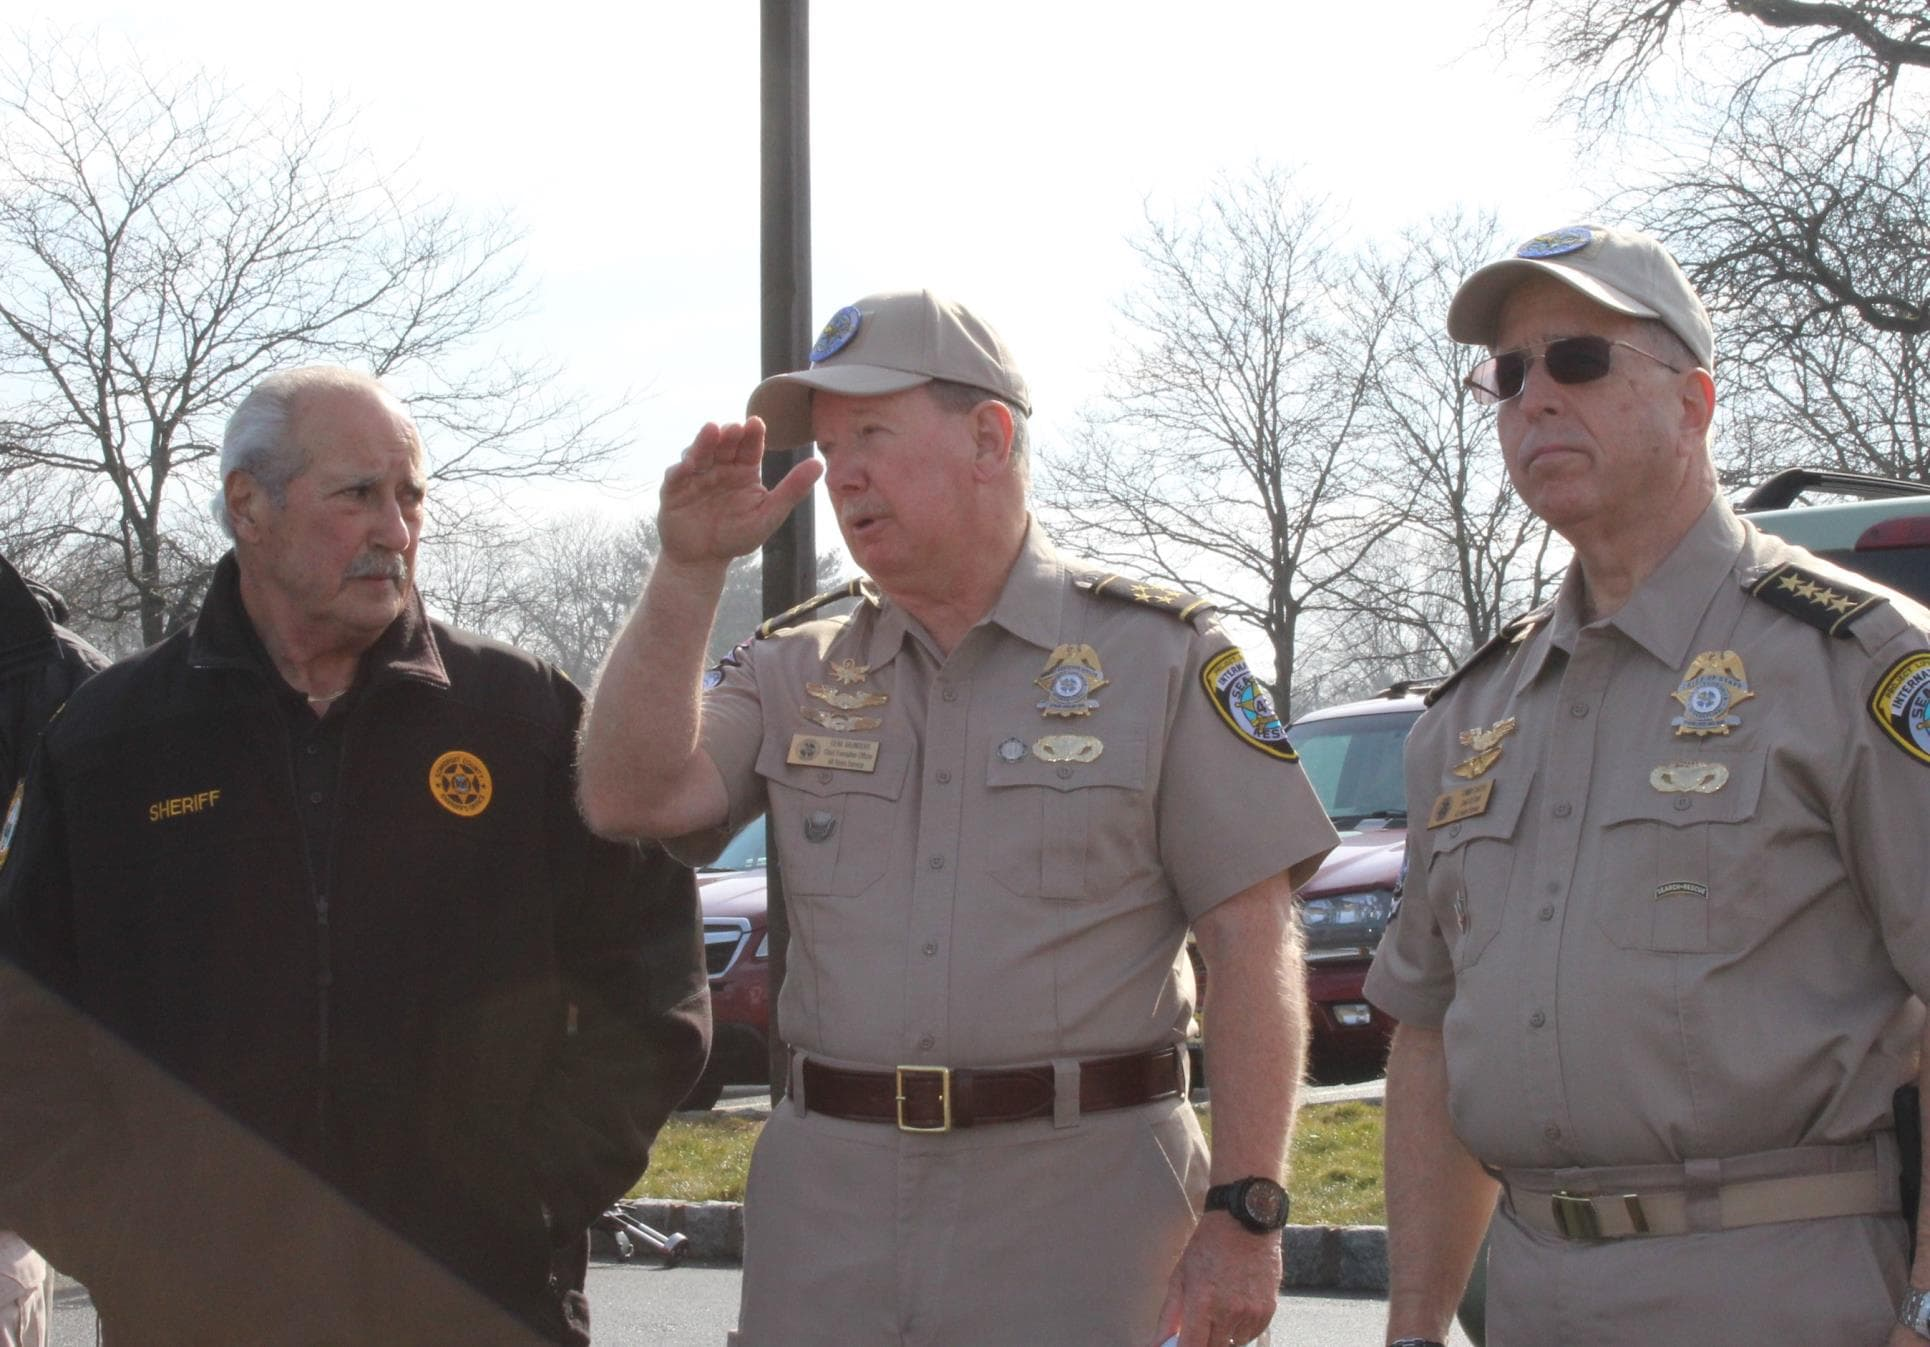 N J  Sheriff's Office Readies to Deploy UAV for Project